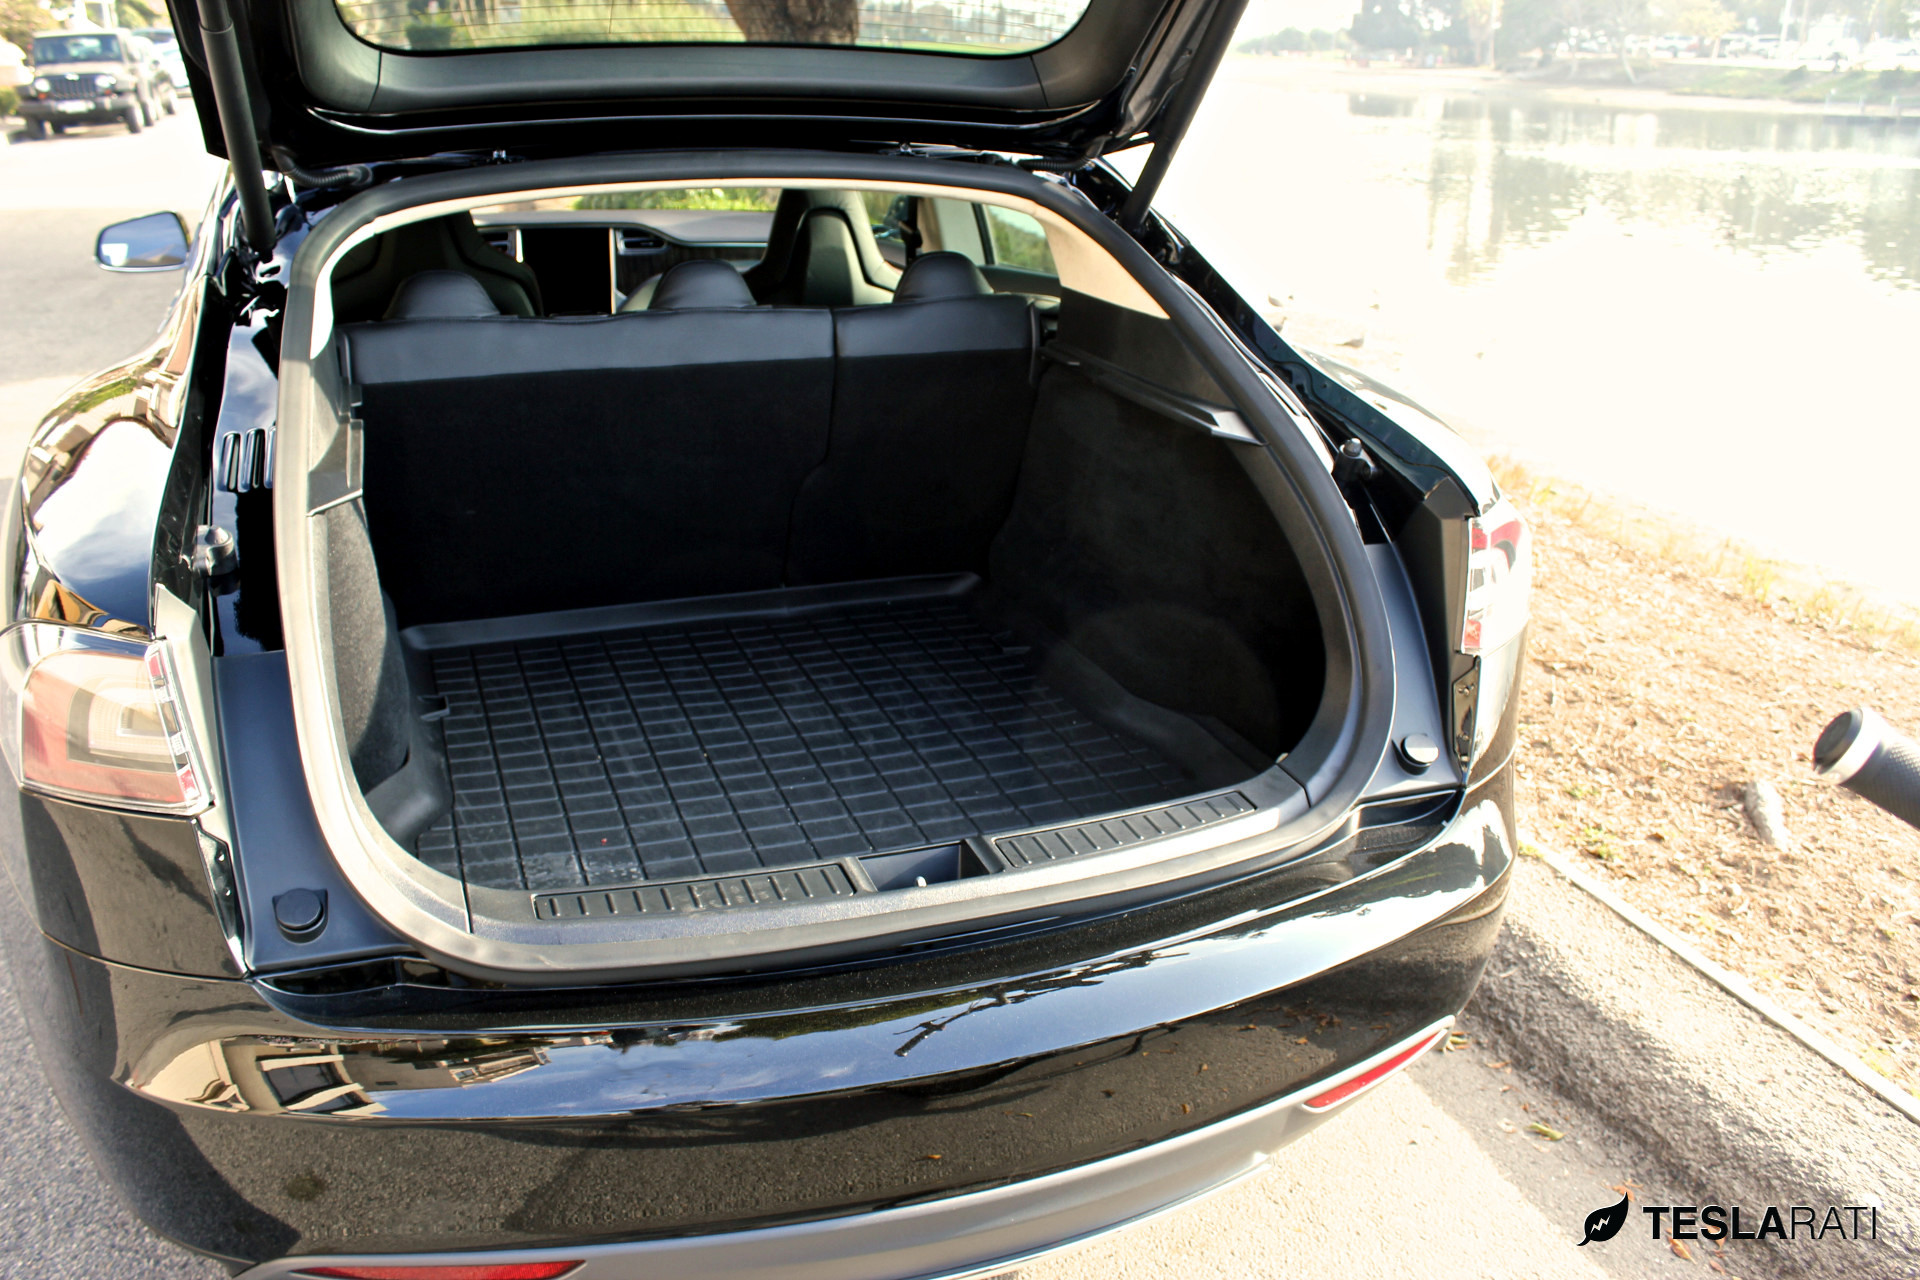 Tesla Model S trunk hatch